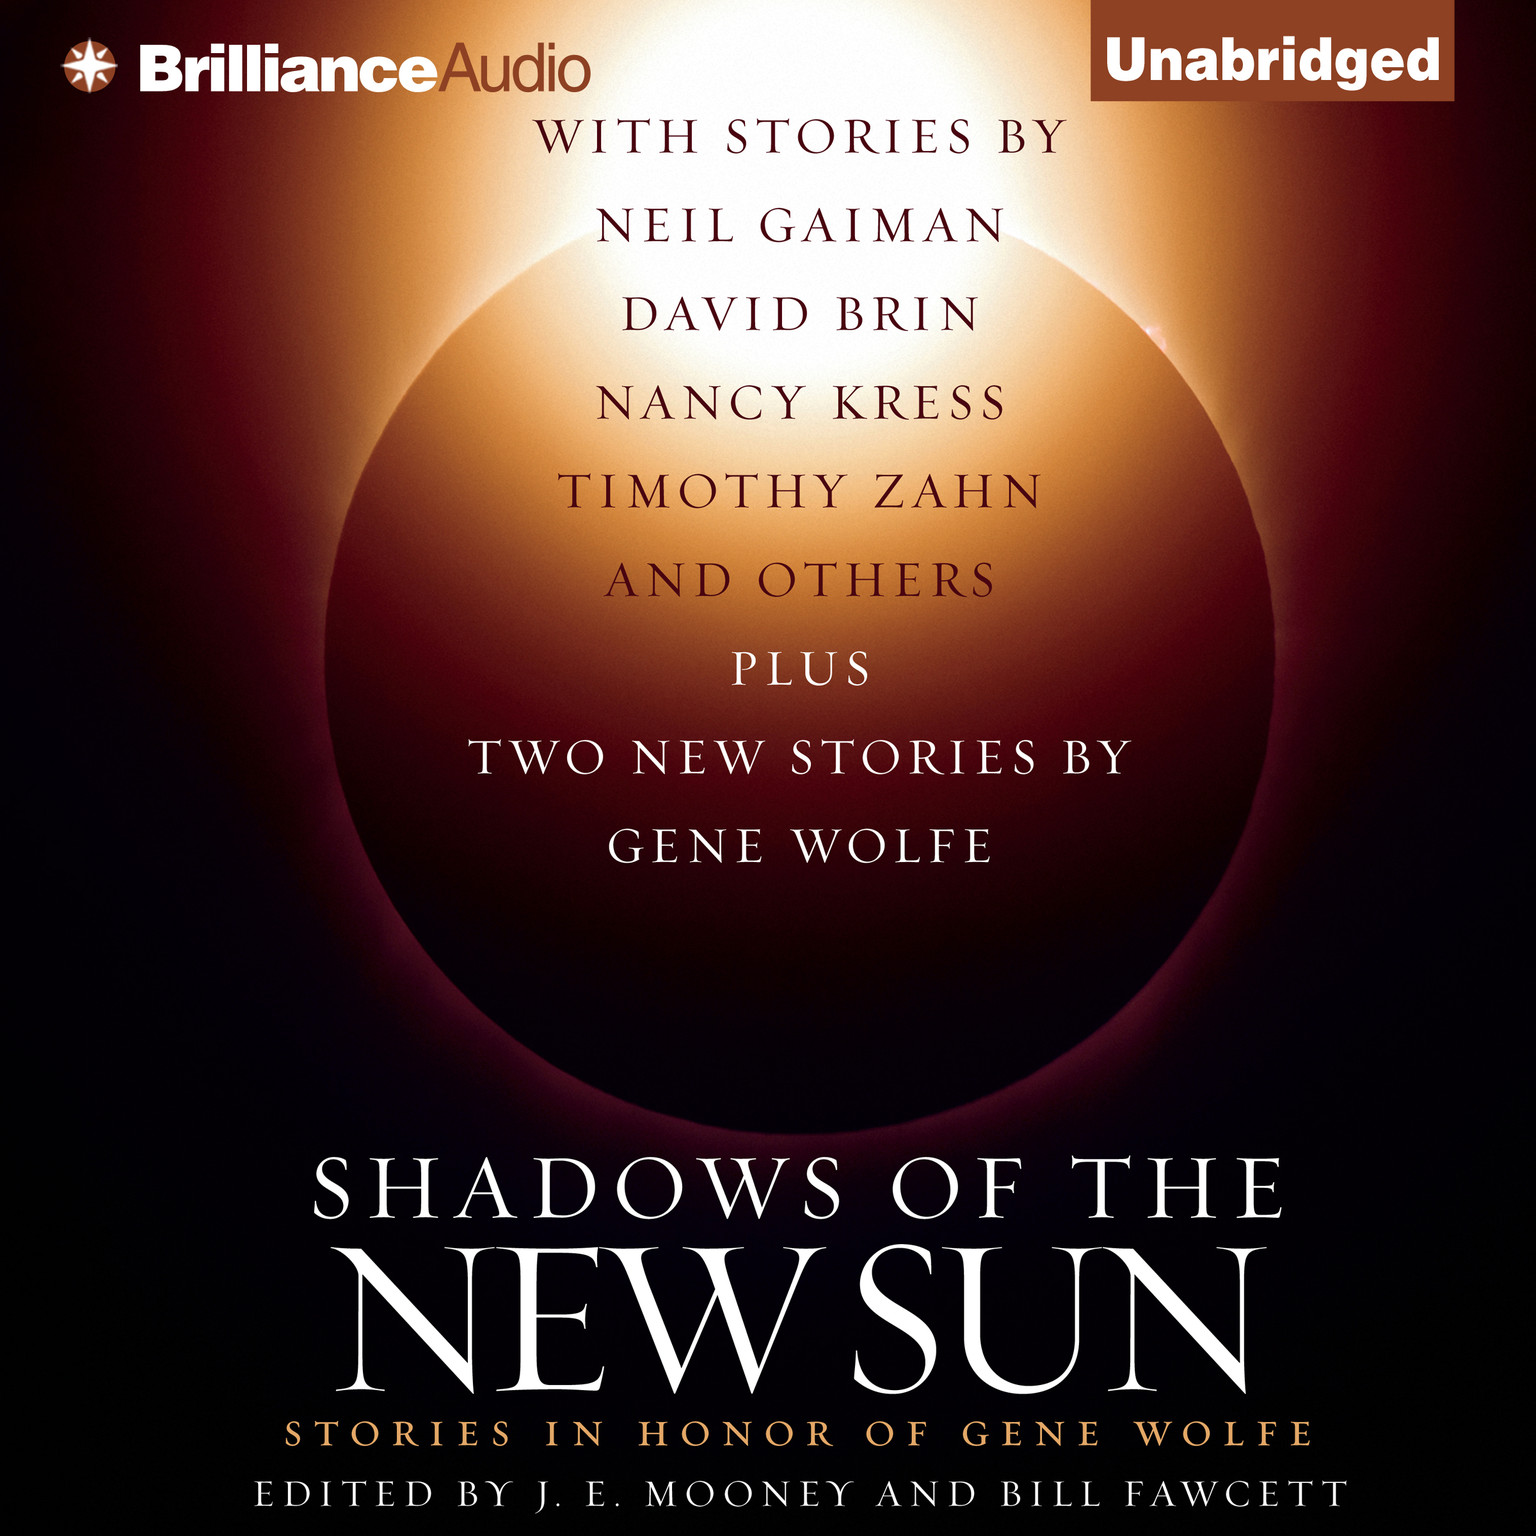 Printable Shadows of the New Sun: Stories in Honor of Gene Wolfe Audiobook Cover Art